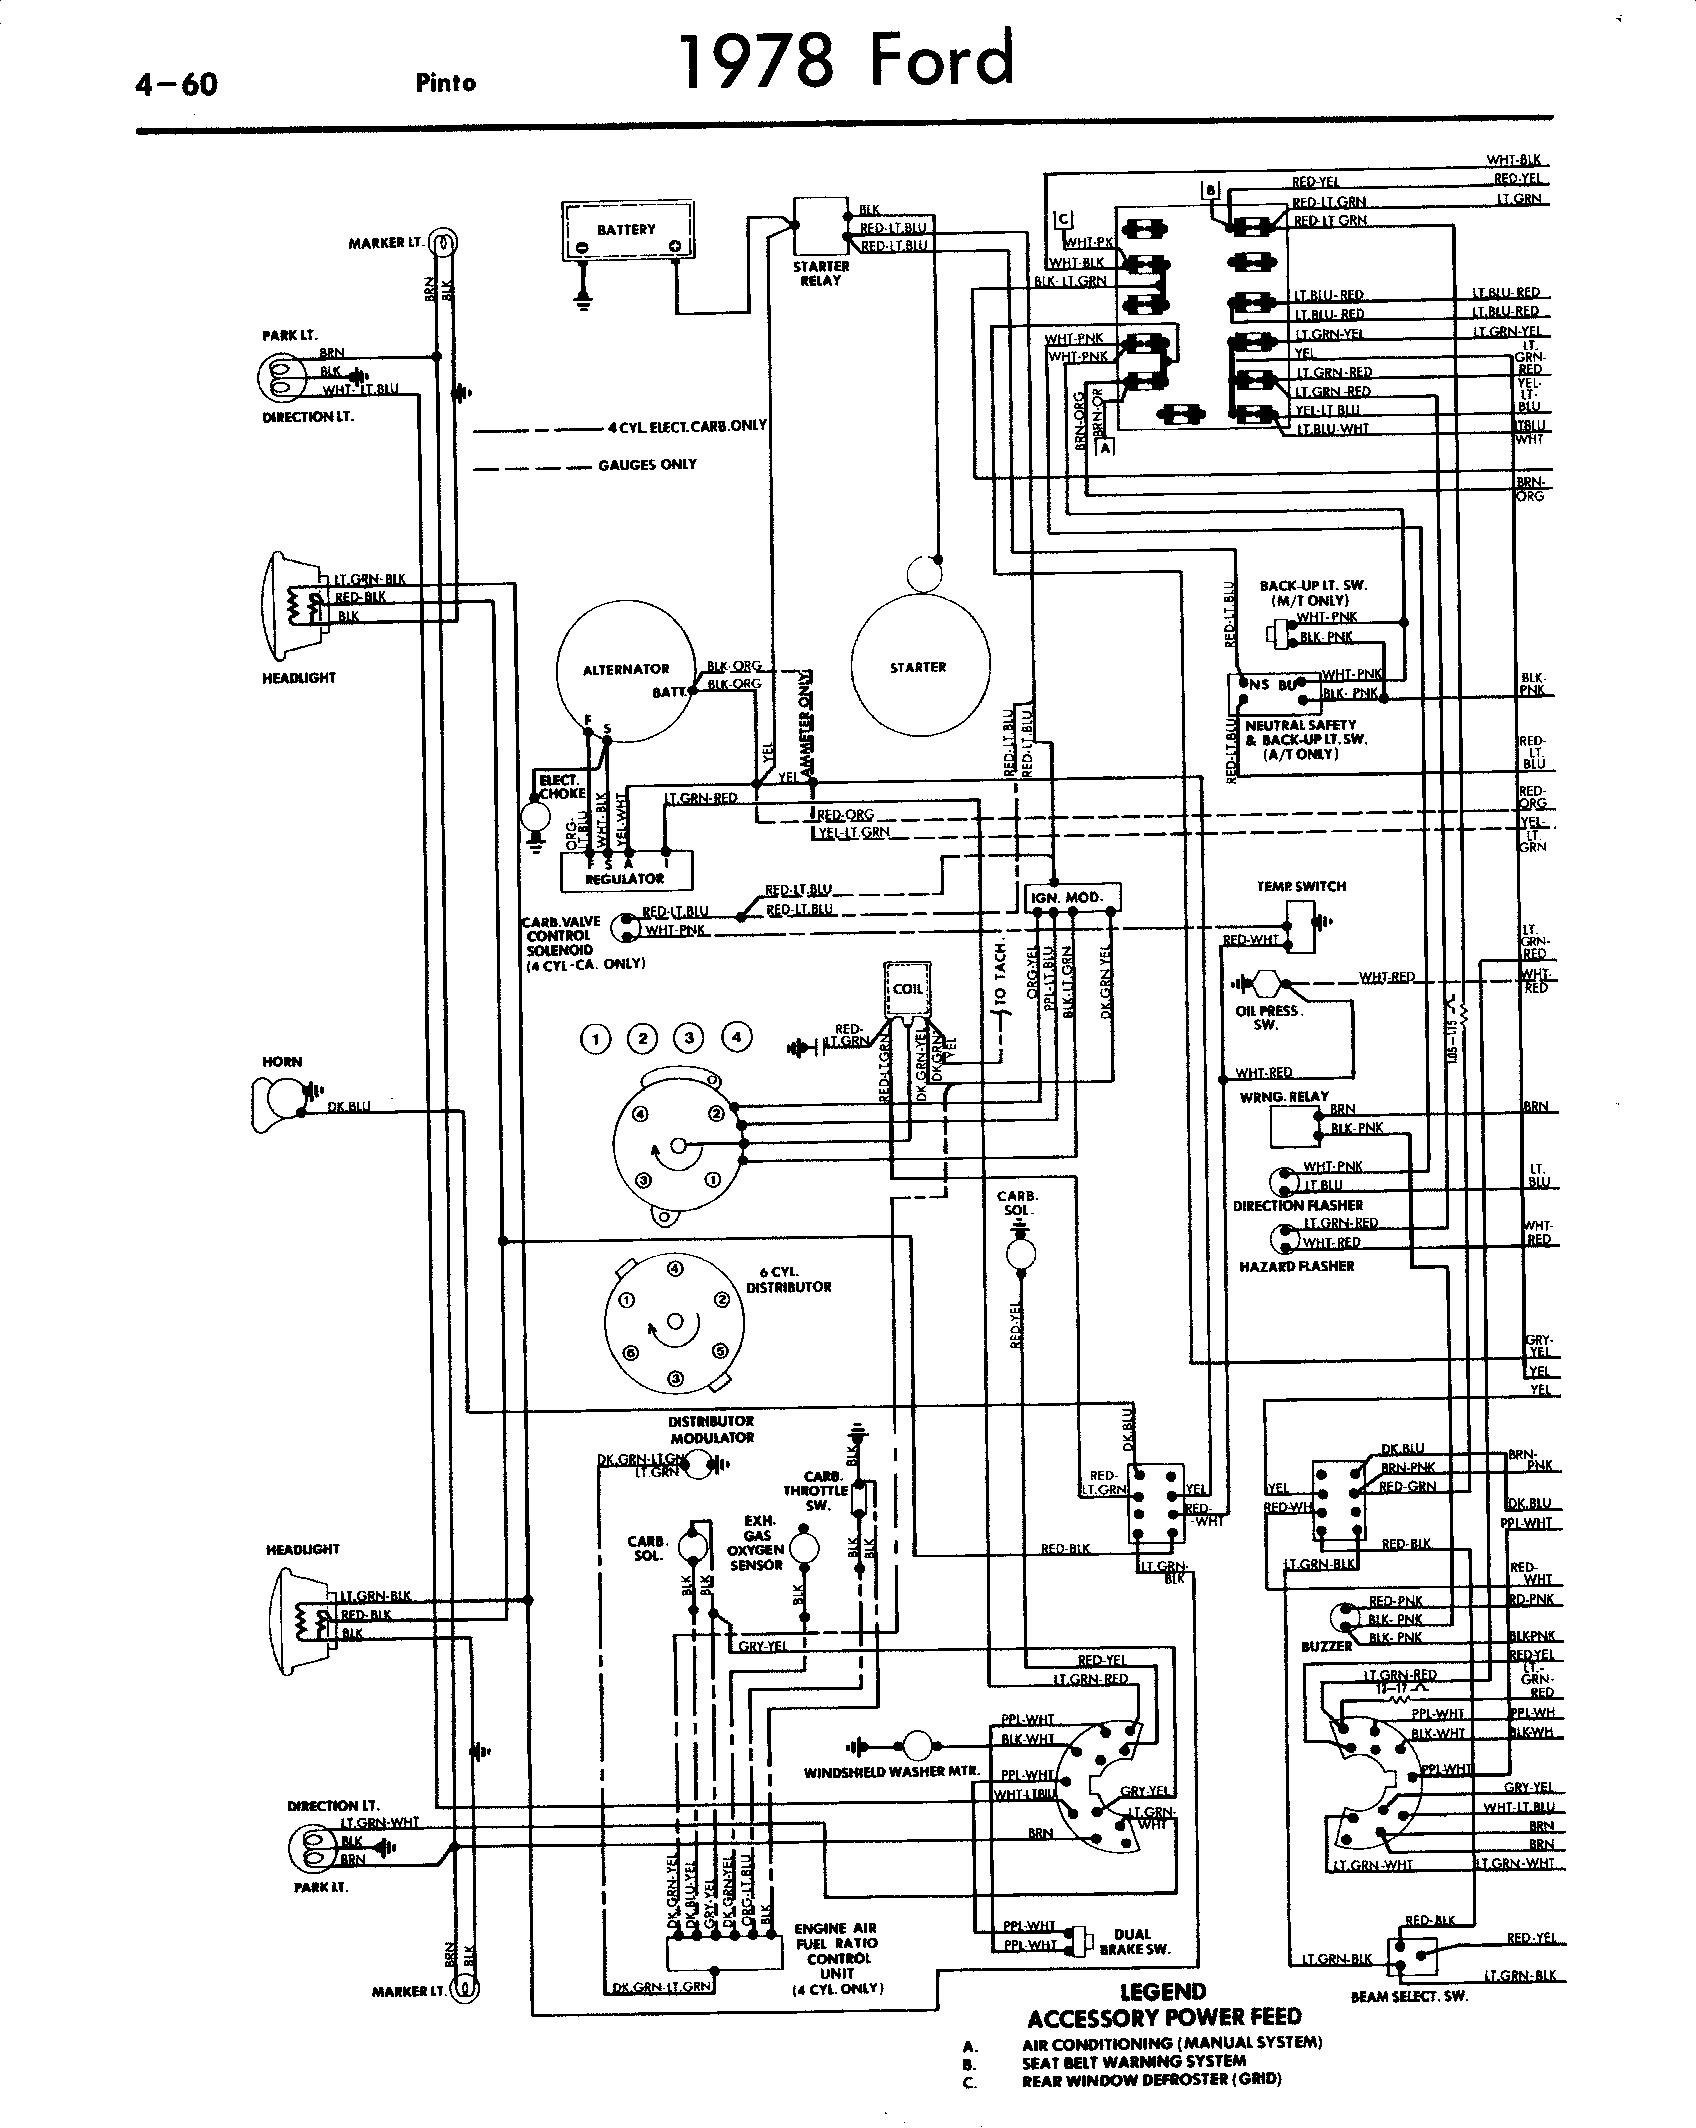 2 4 cyl ford engine parts diagram  u2022 wiring diagram for free